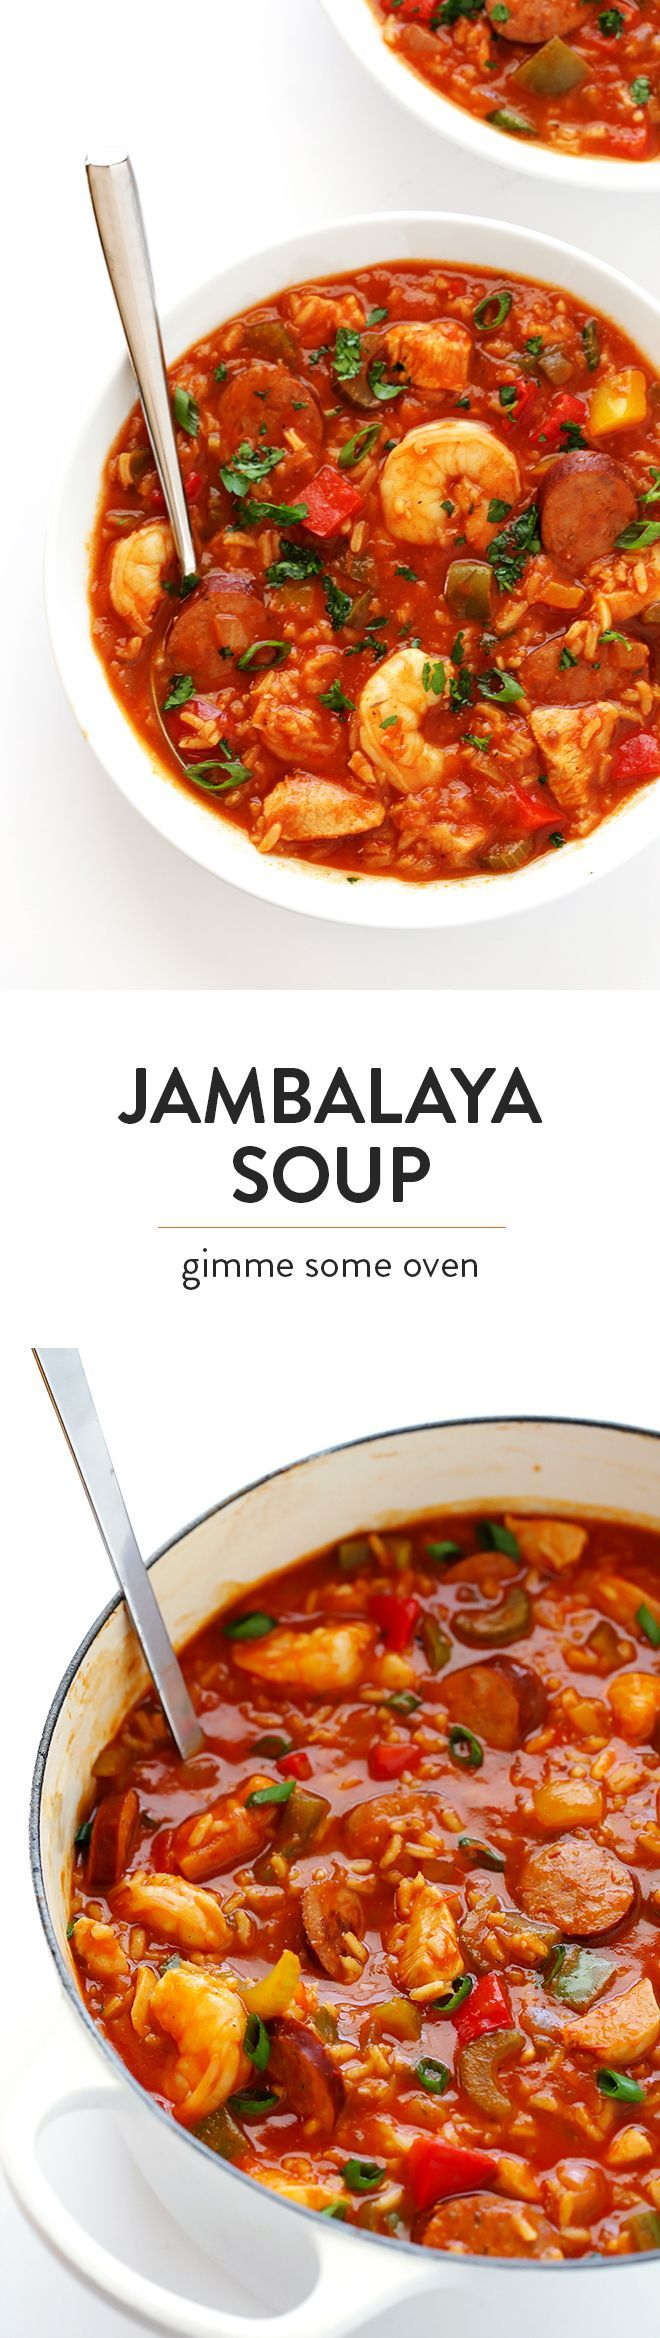 This Jambalaya Soup recipe can be made with shrimp, chicken, Andouille sausage -- or all three! It's easy to make, and so hearty and delicious. | gimmesomeoven.com #jambalaya #soup #recipe